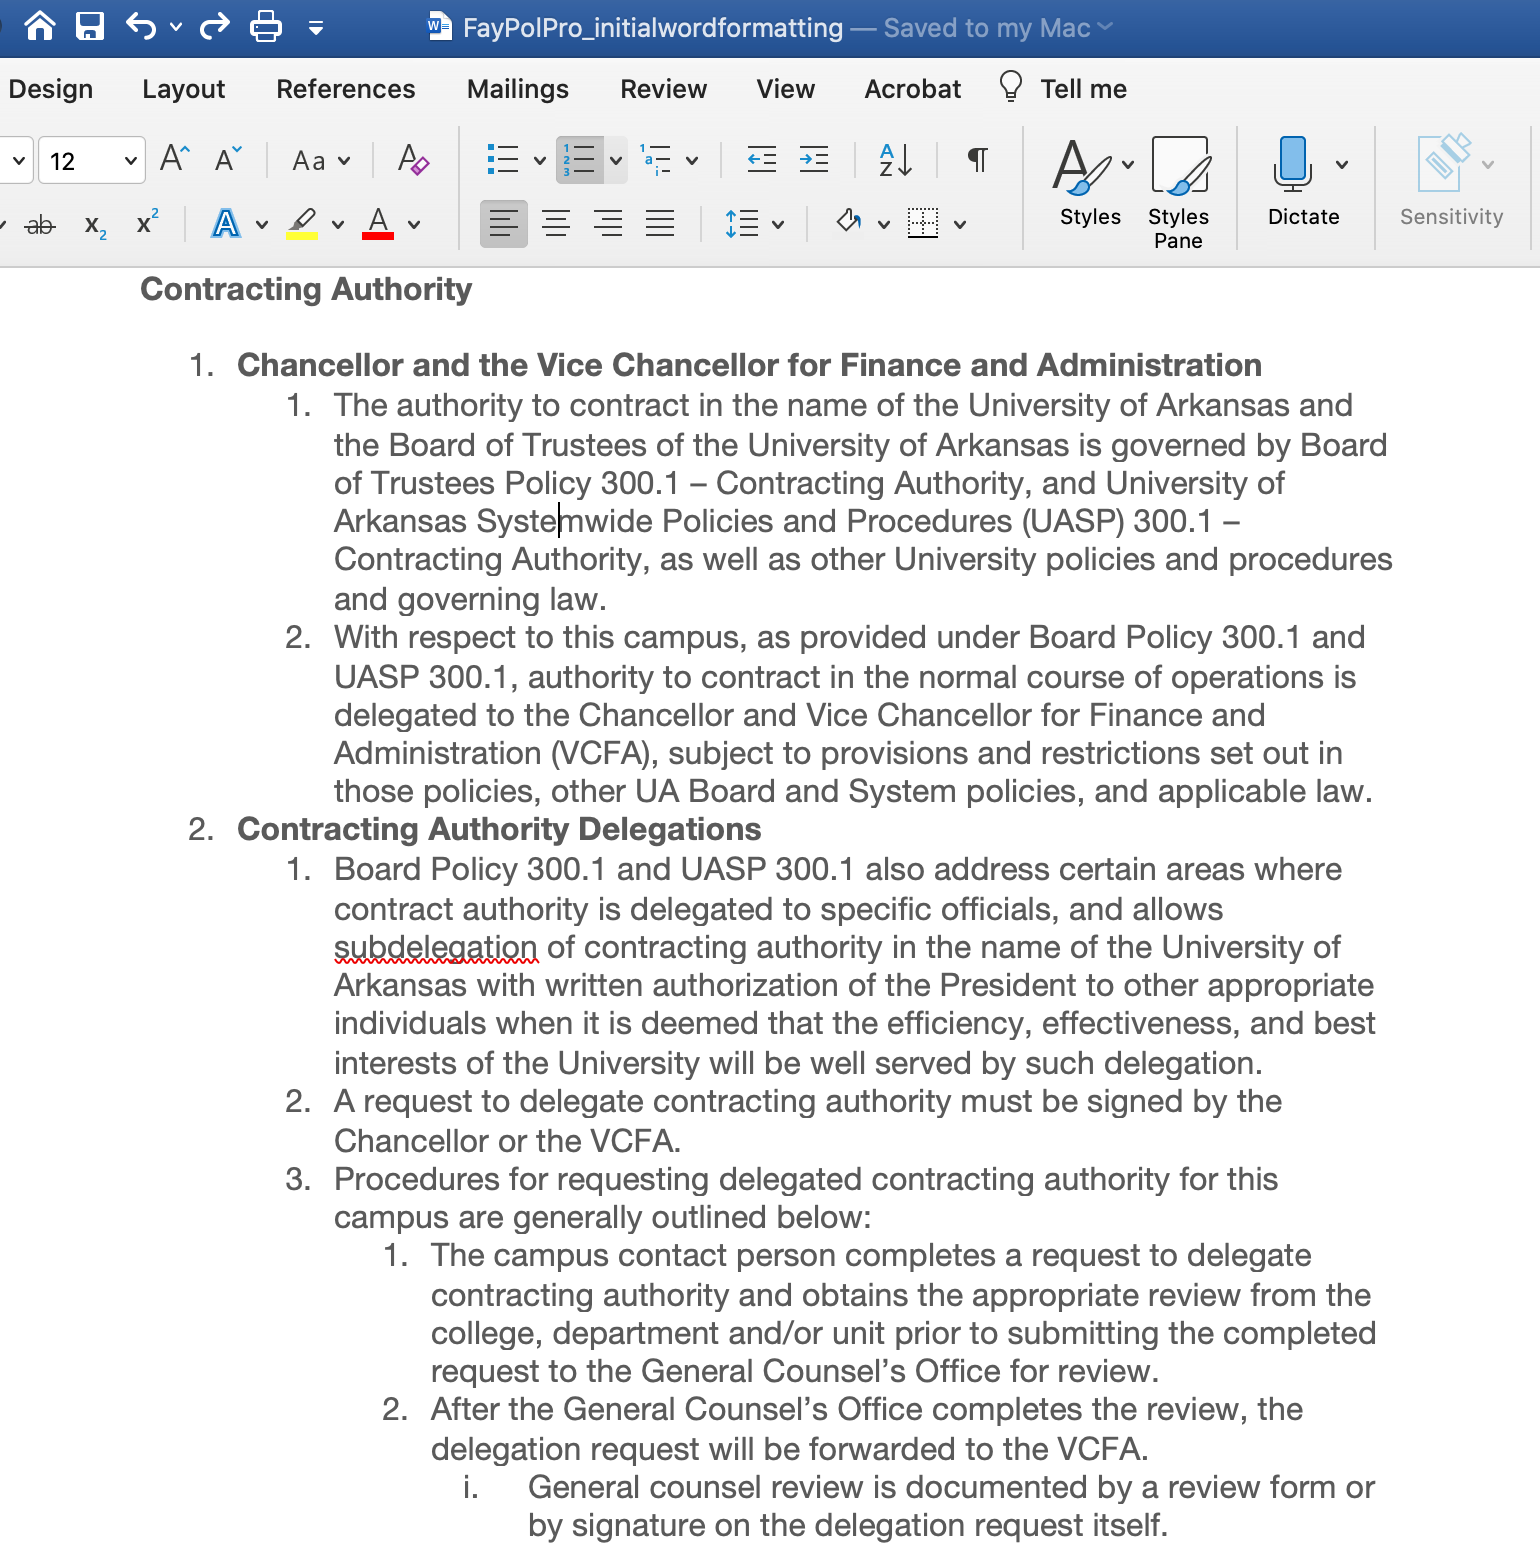 Altered numbering after pasting into Word